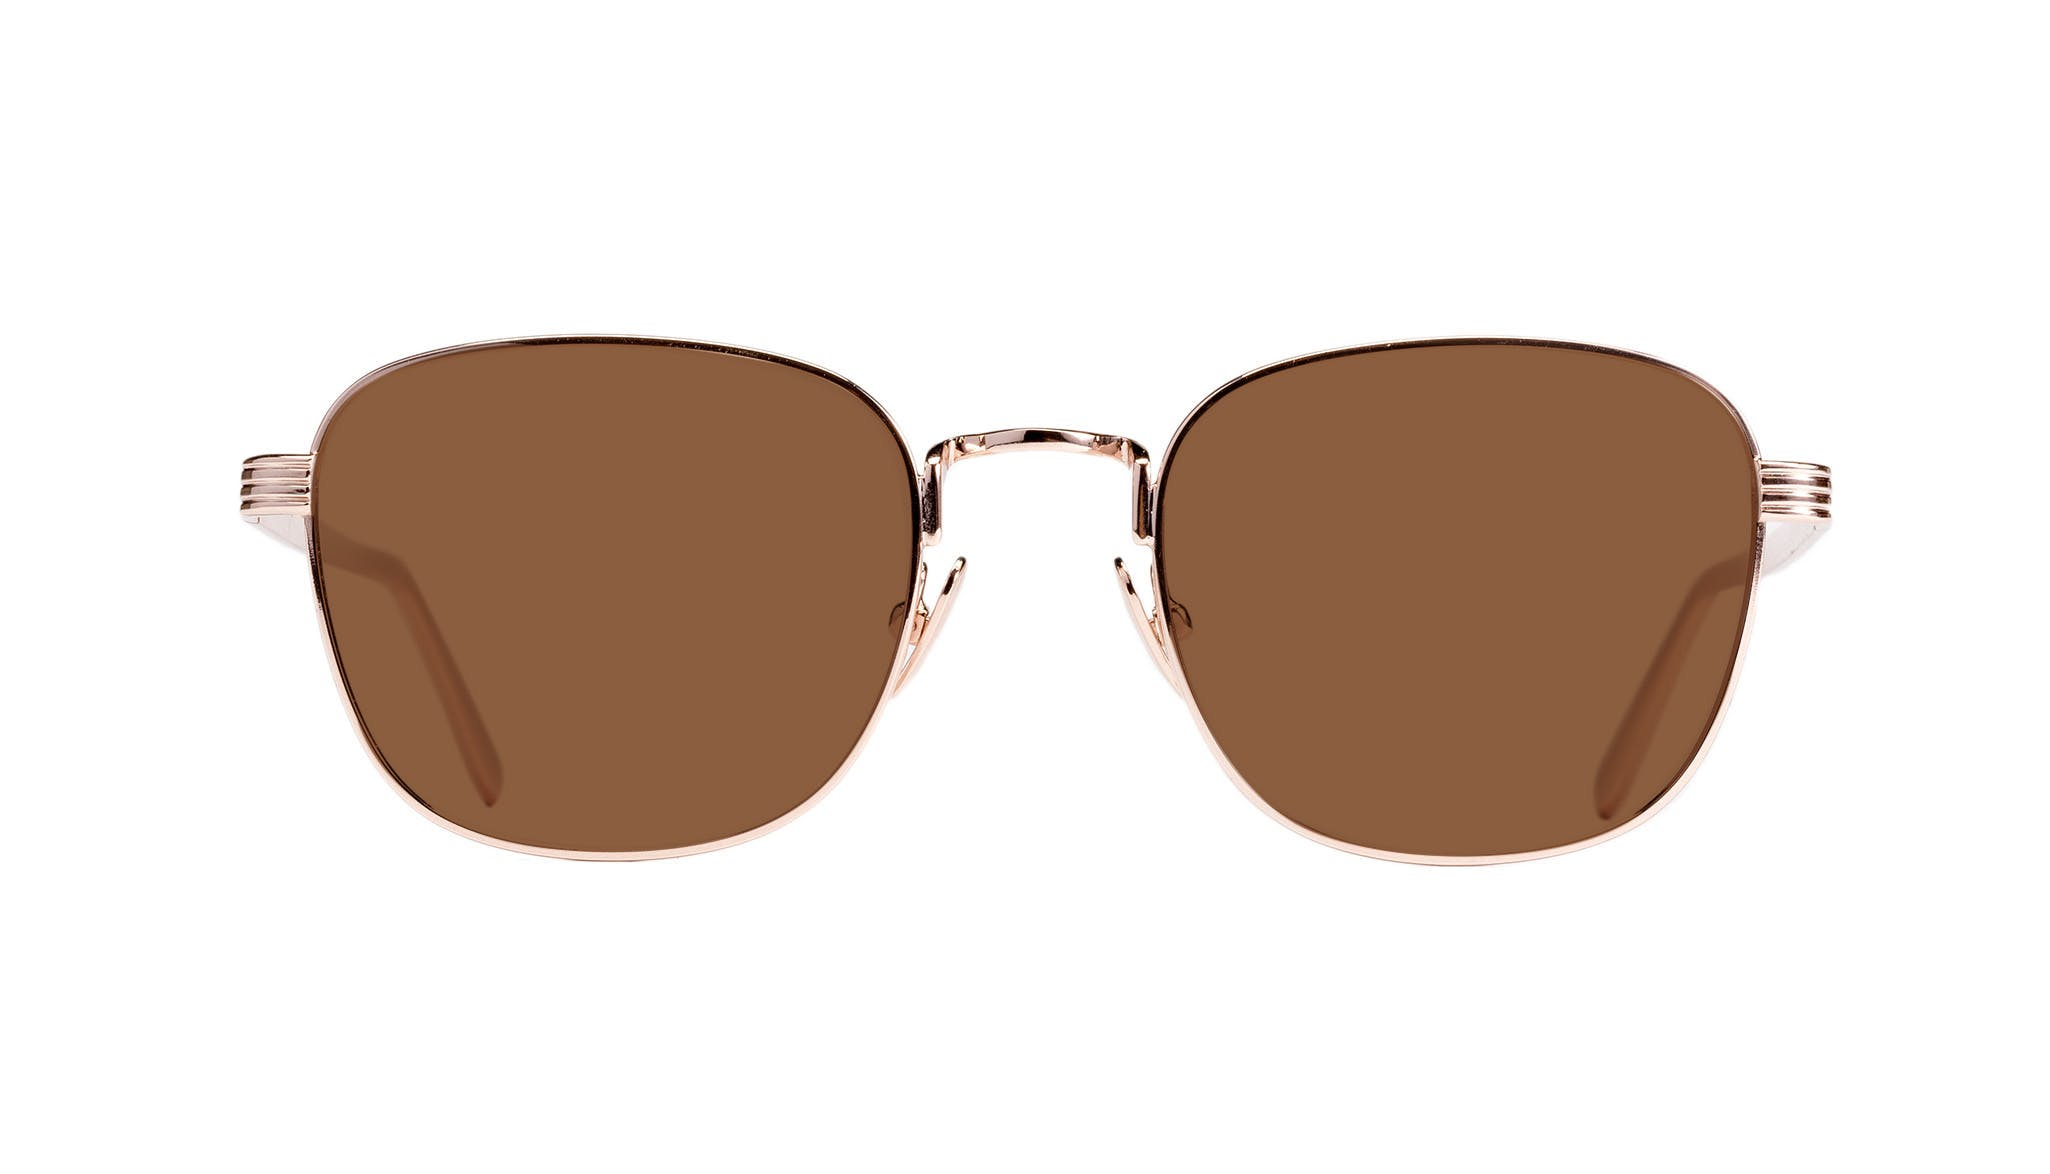 Affordable Fashion Glasses Rectangle Sunglasses Women Delight Gold Front